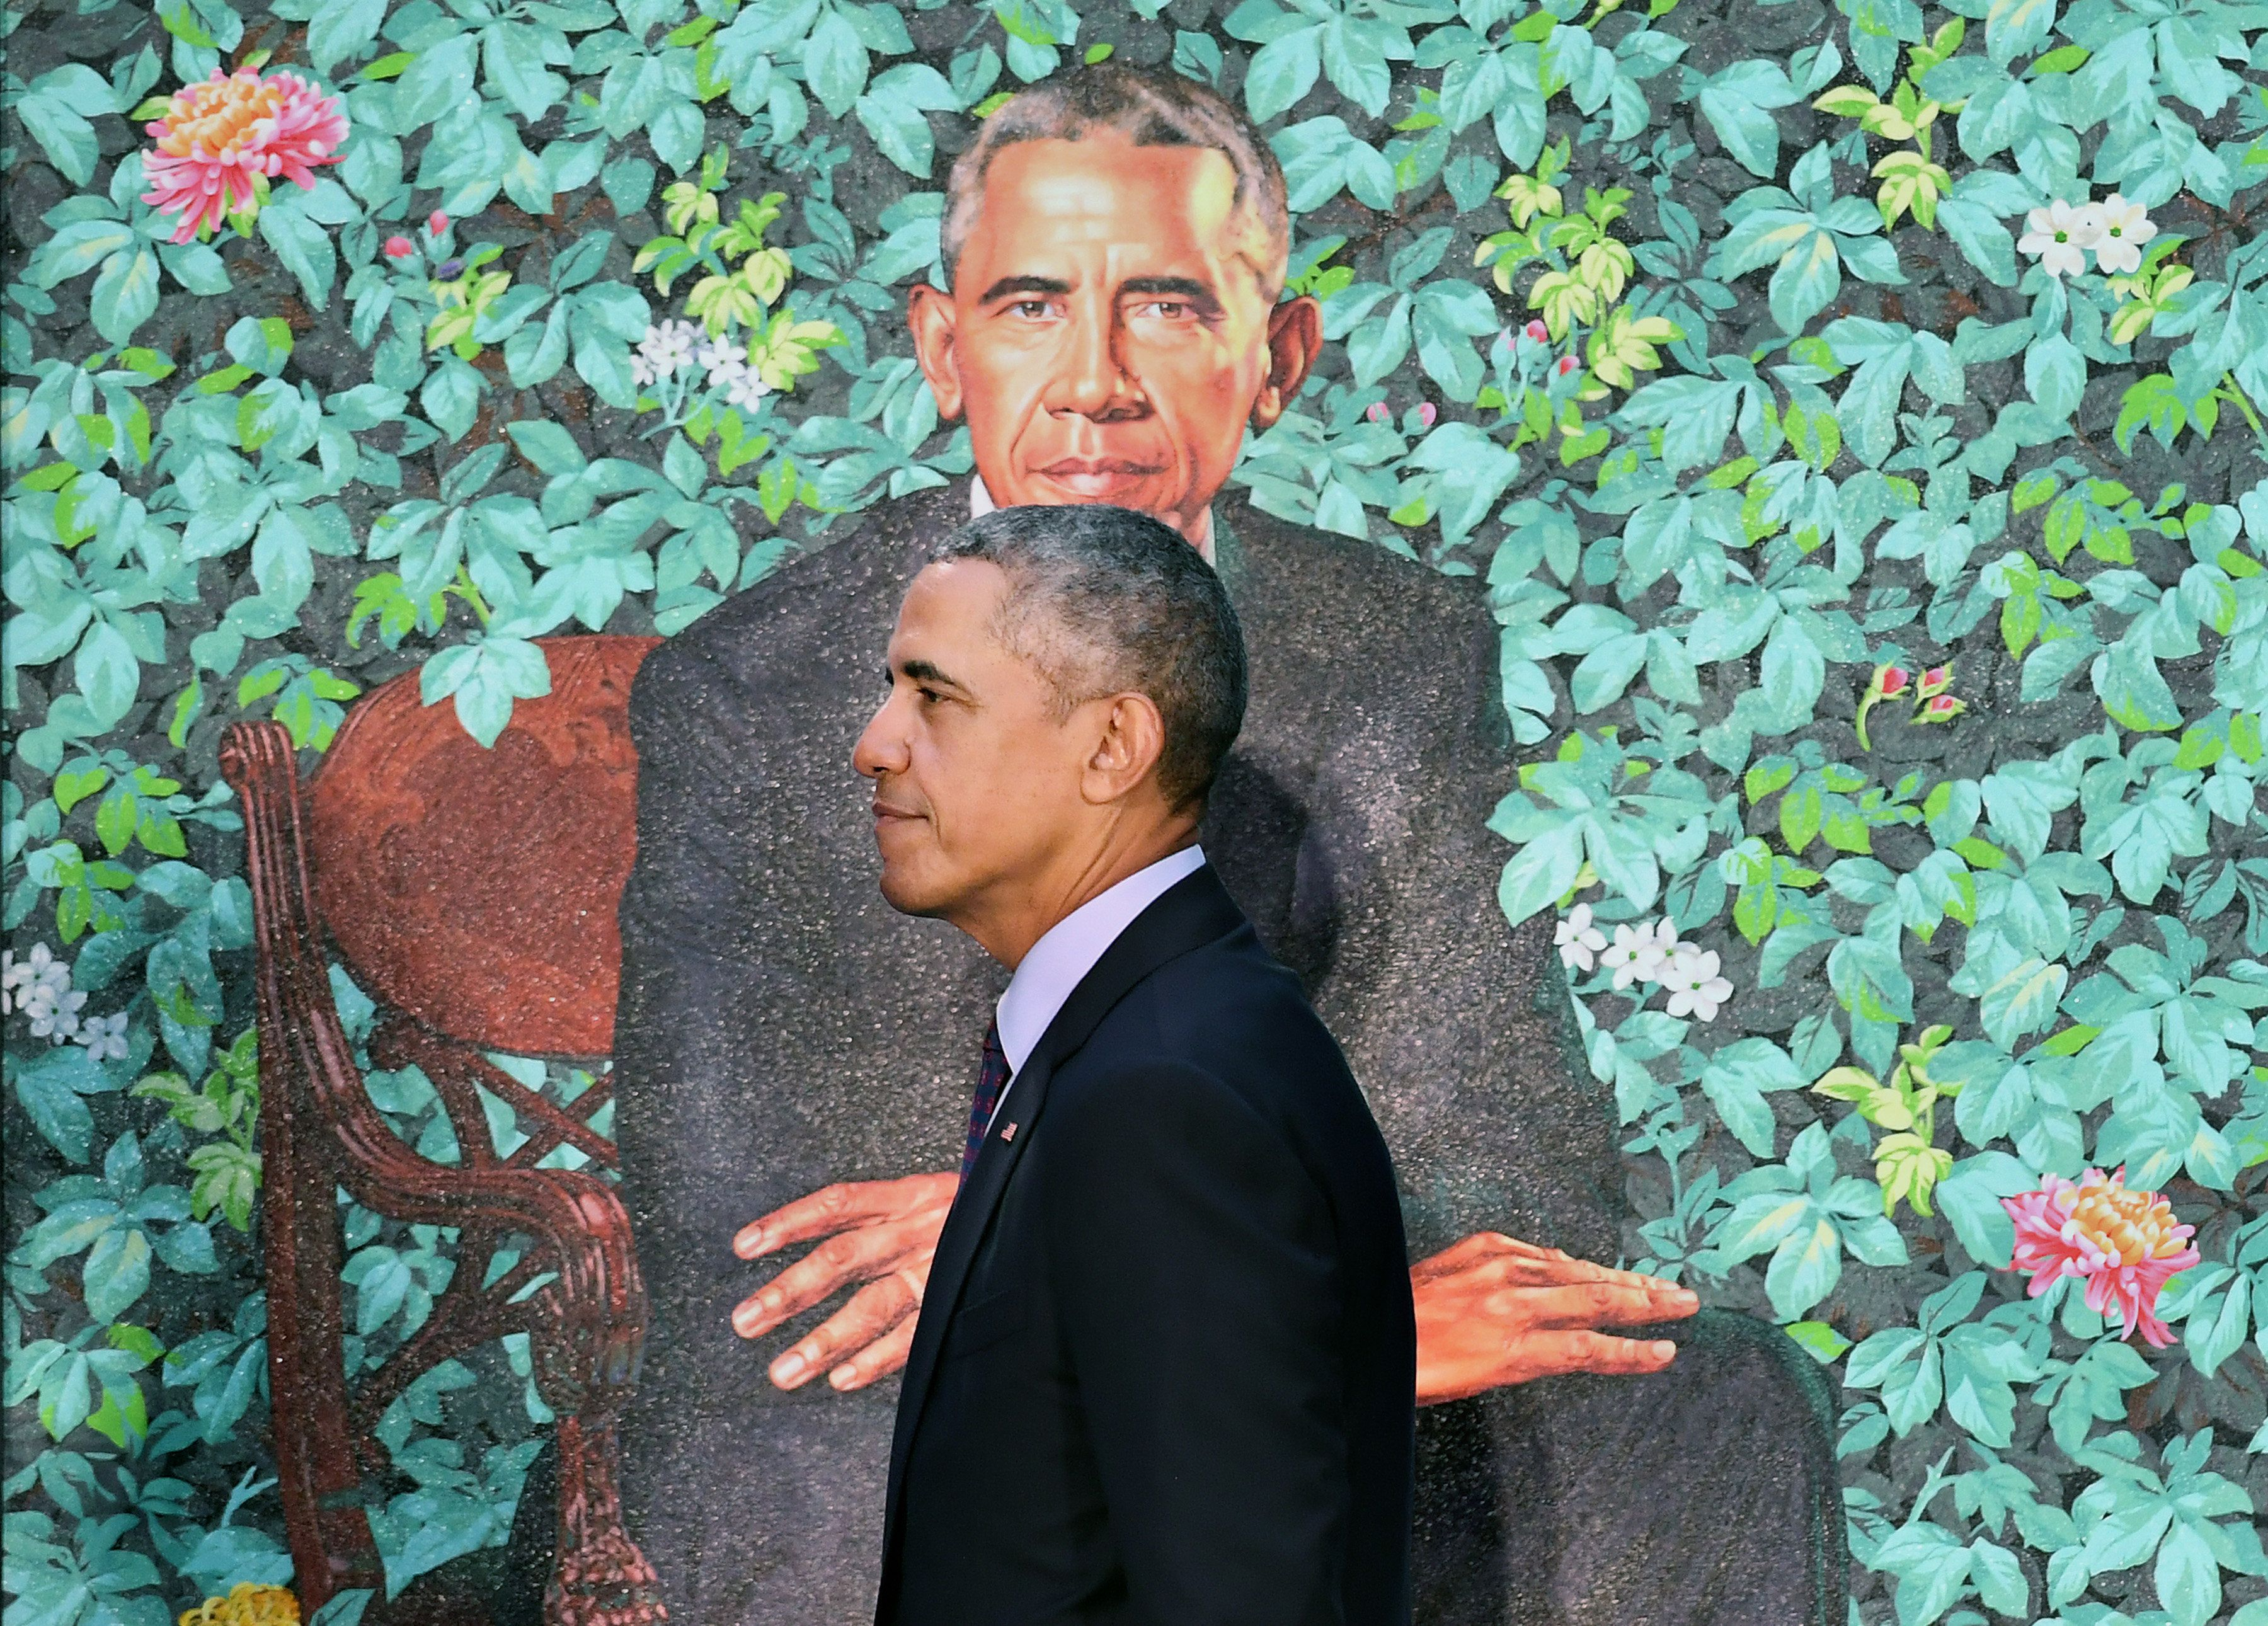 WASHINGTON, DC - FEBRUARY 12: Former President Barack Obama walks by his presidential portrait as he and former First Lady Michelle Obama have their portraits unveiled at the Smithsonian National Portrait Gallery on Monday February 12, 2018 in Washington, DC. The former President's portrait was painted by Kehinde Wiley while the former First Lady's portrait was painted by Amy Sherald. (Photo by Matt McClain/The Washington Post via Getty Images)